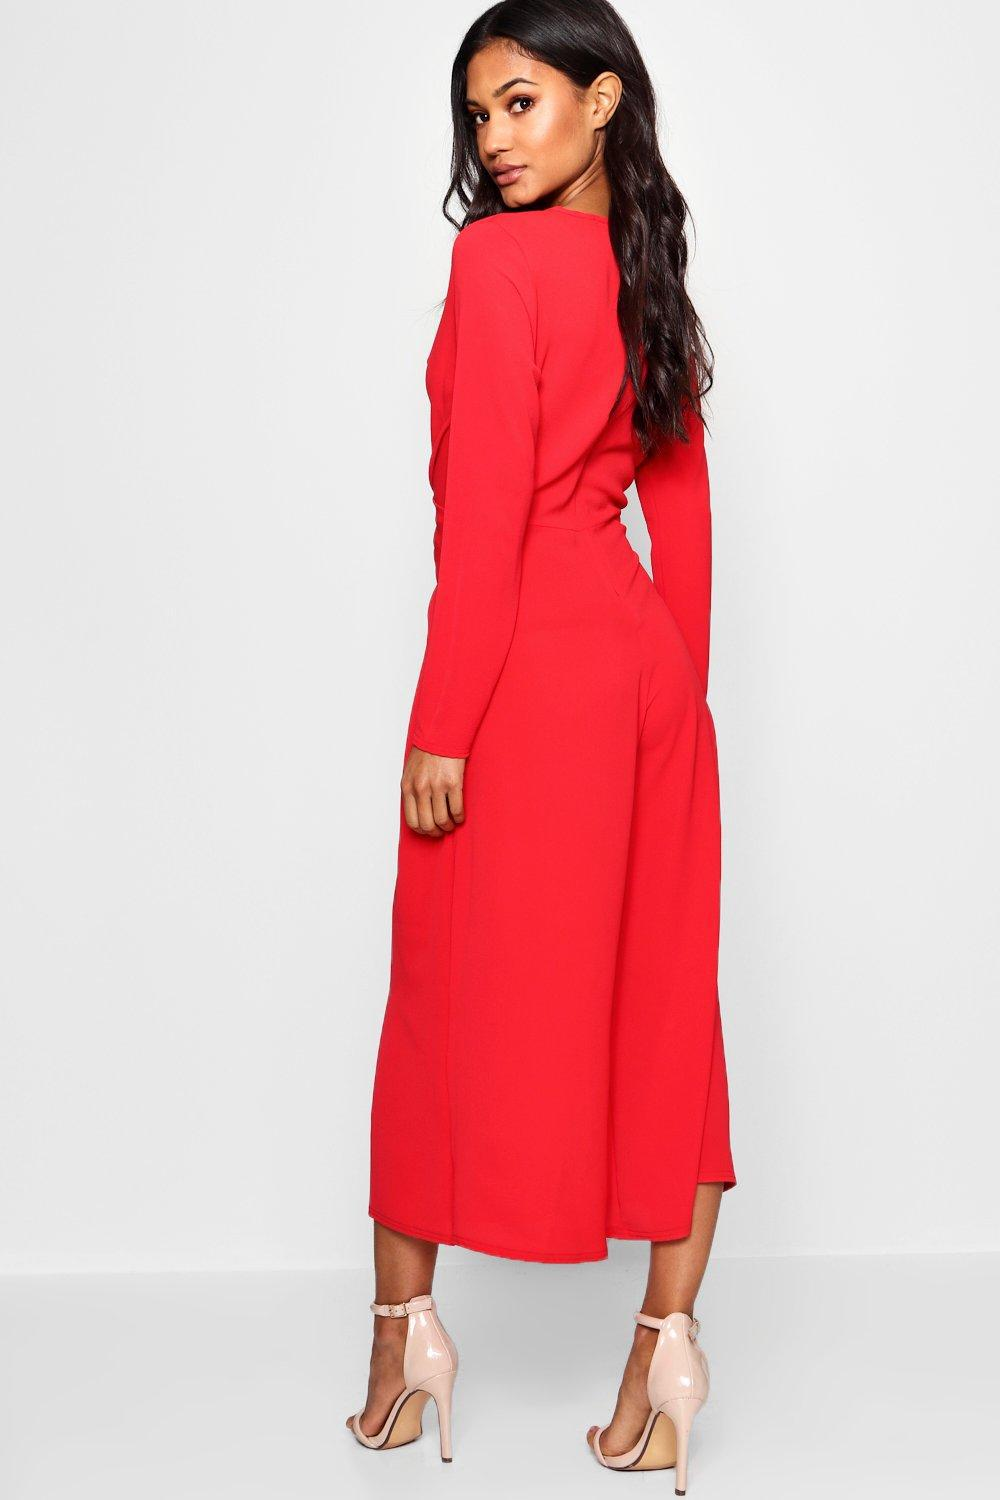 d6c80ed978 Boohoo Knot Front Culotte Jumpsuit in Red - Save 30% - Lyst